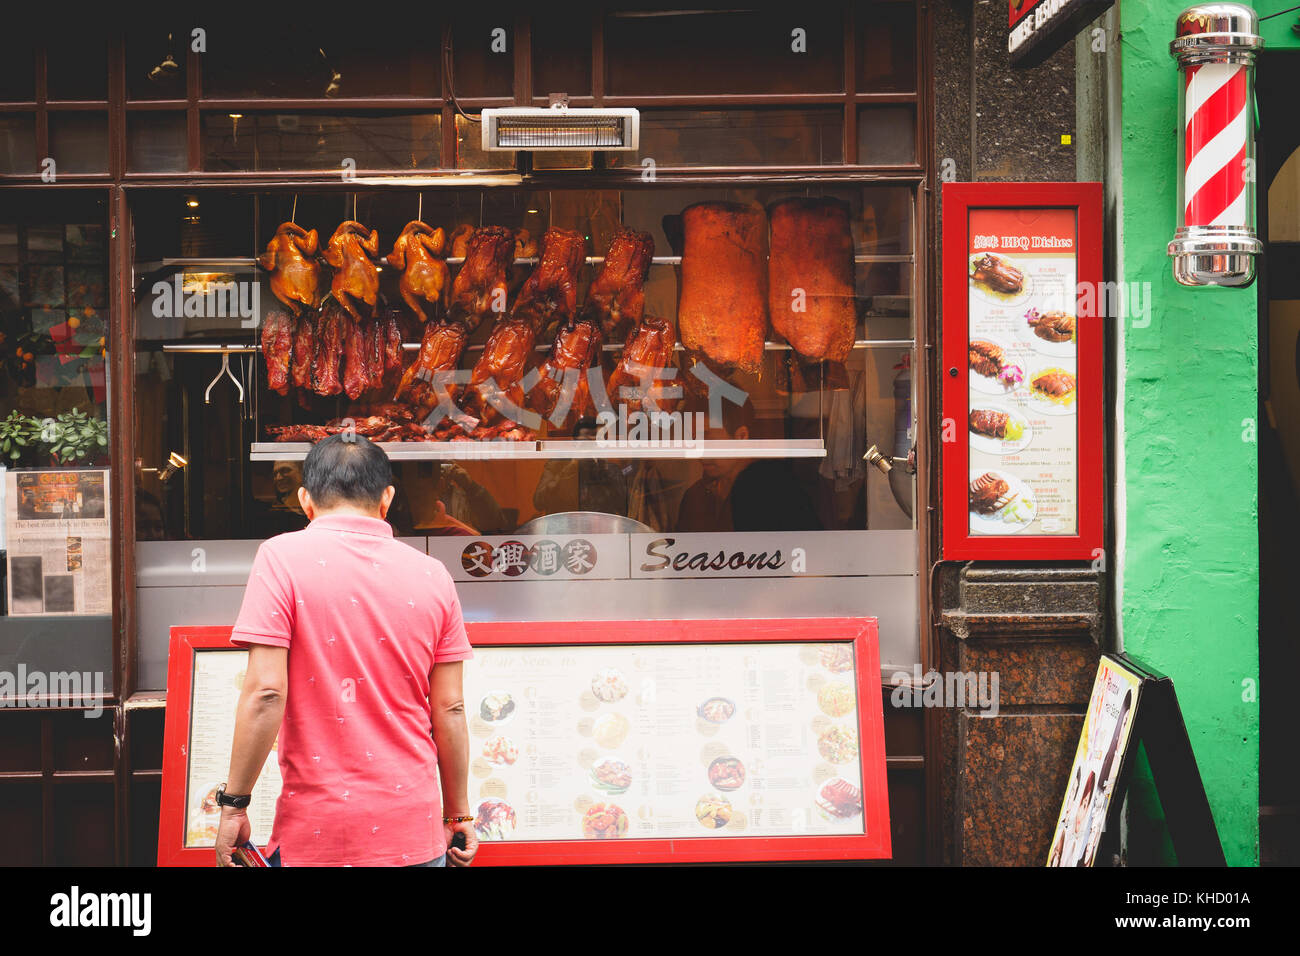 Crispy ducks hanging in a Chinese restaurant window in Chinatown. London, 2017. Landscape format. - Stock Image